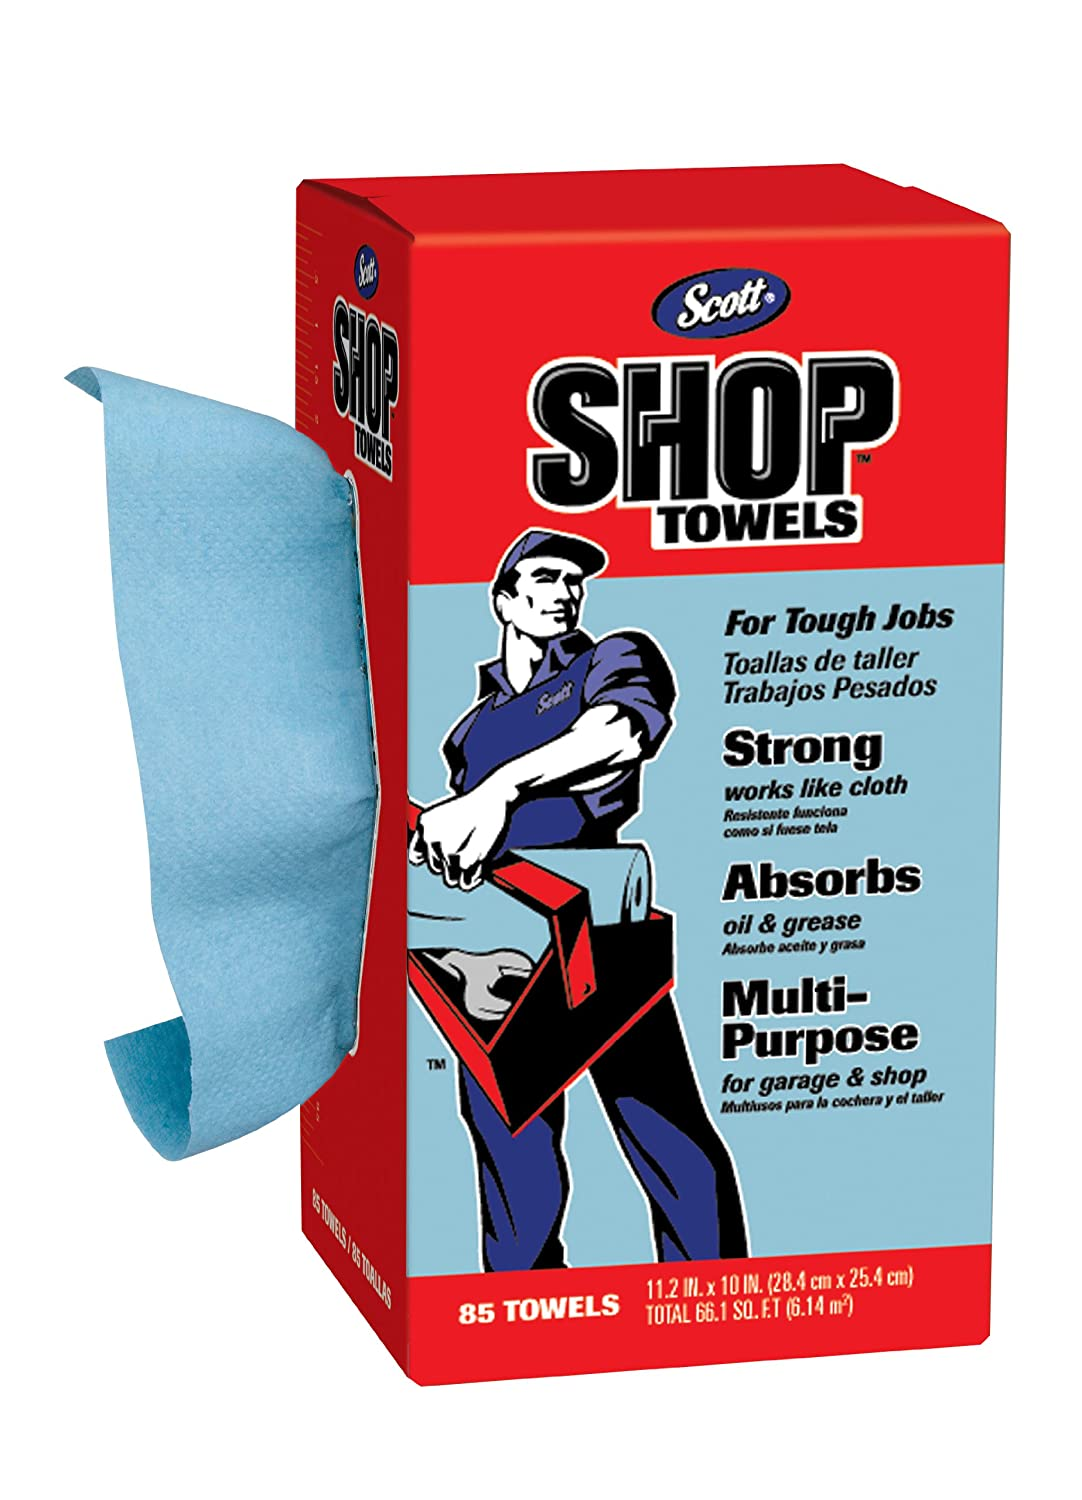 Amazon.com: Scott Shop Towels In A Box, 85-Count, Blue, (Pack of 12): Health & Personal Care